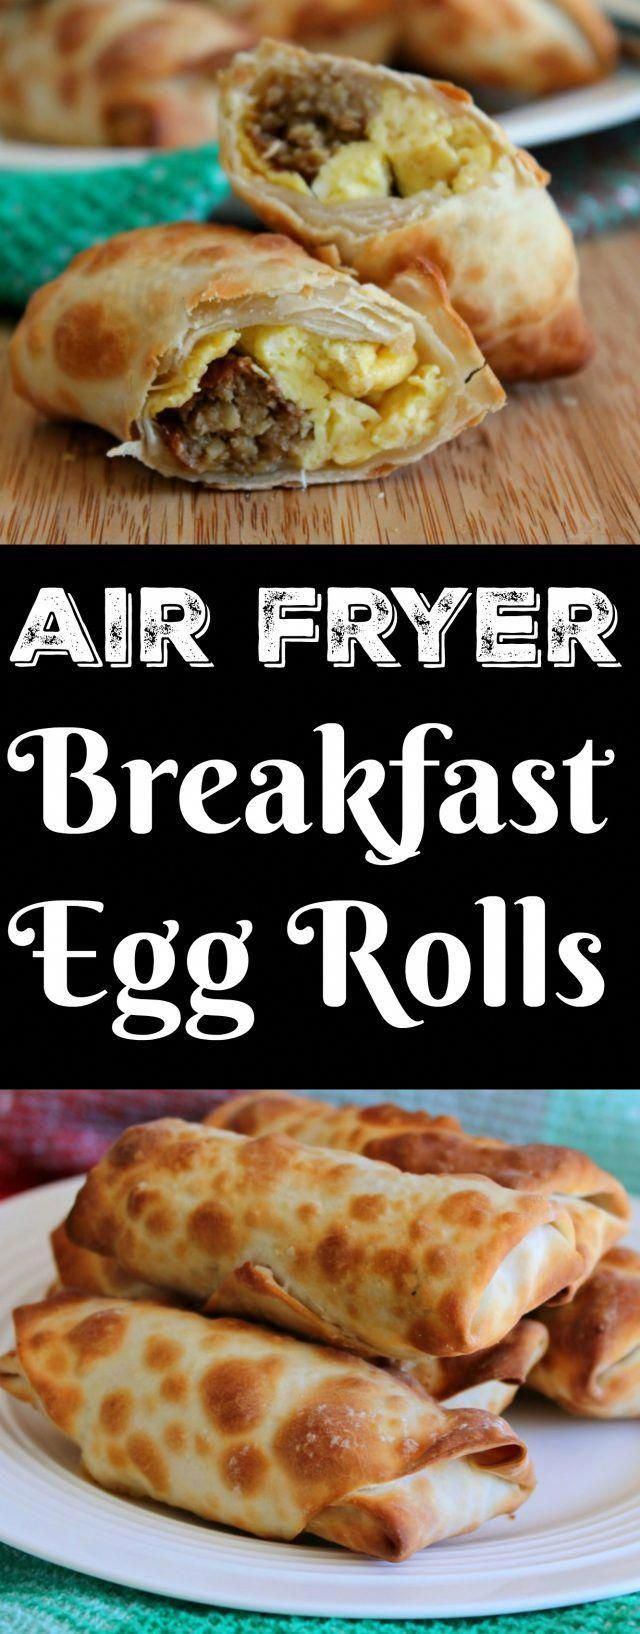 Breakfast Egg Rolls Air Fryer Foody Schmoody Blog